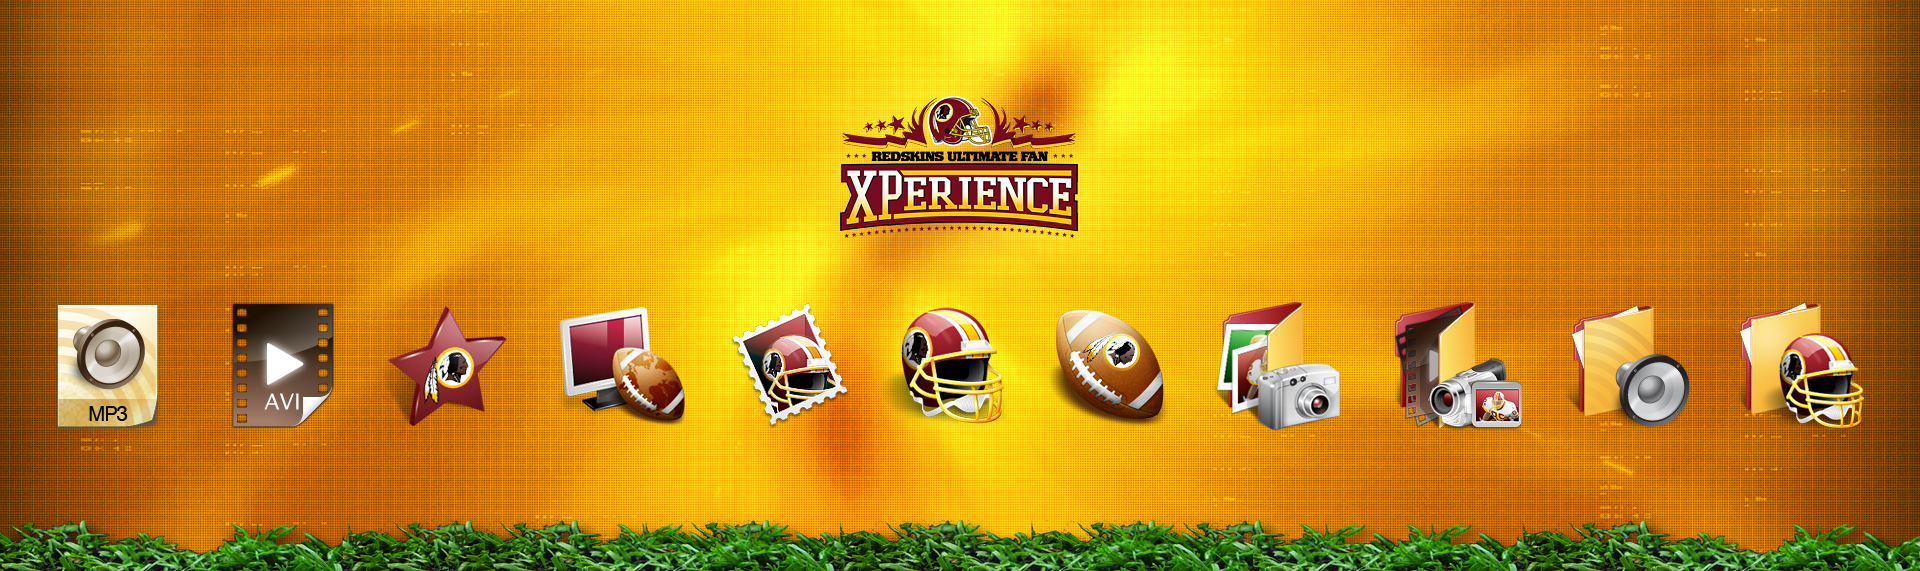 Alienware: Redskins Ultimate Fan Xperience Windows Desktop Icon Set  Client: Alienware Corporation + Washington Redskins  The Redskins Ultimate Fan XPerience exclusive desktop theme includes customized icons and wallpapers to go along with a media player transformed into a 'technology enhanced' football. The Window theme transforms your ordinary Windows XP into a Redskins fan's delight. Available only when you purchased the Washington Redskins Ultimate Fan XPerience PC. Copyright. Alienware Corporation. Copyright. Washington Redskins.